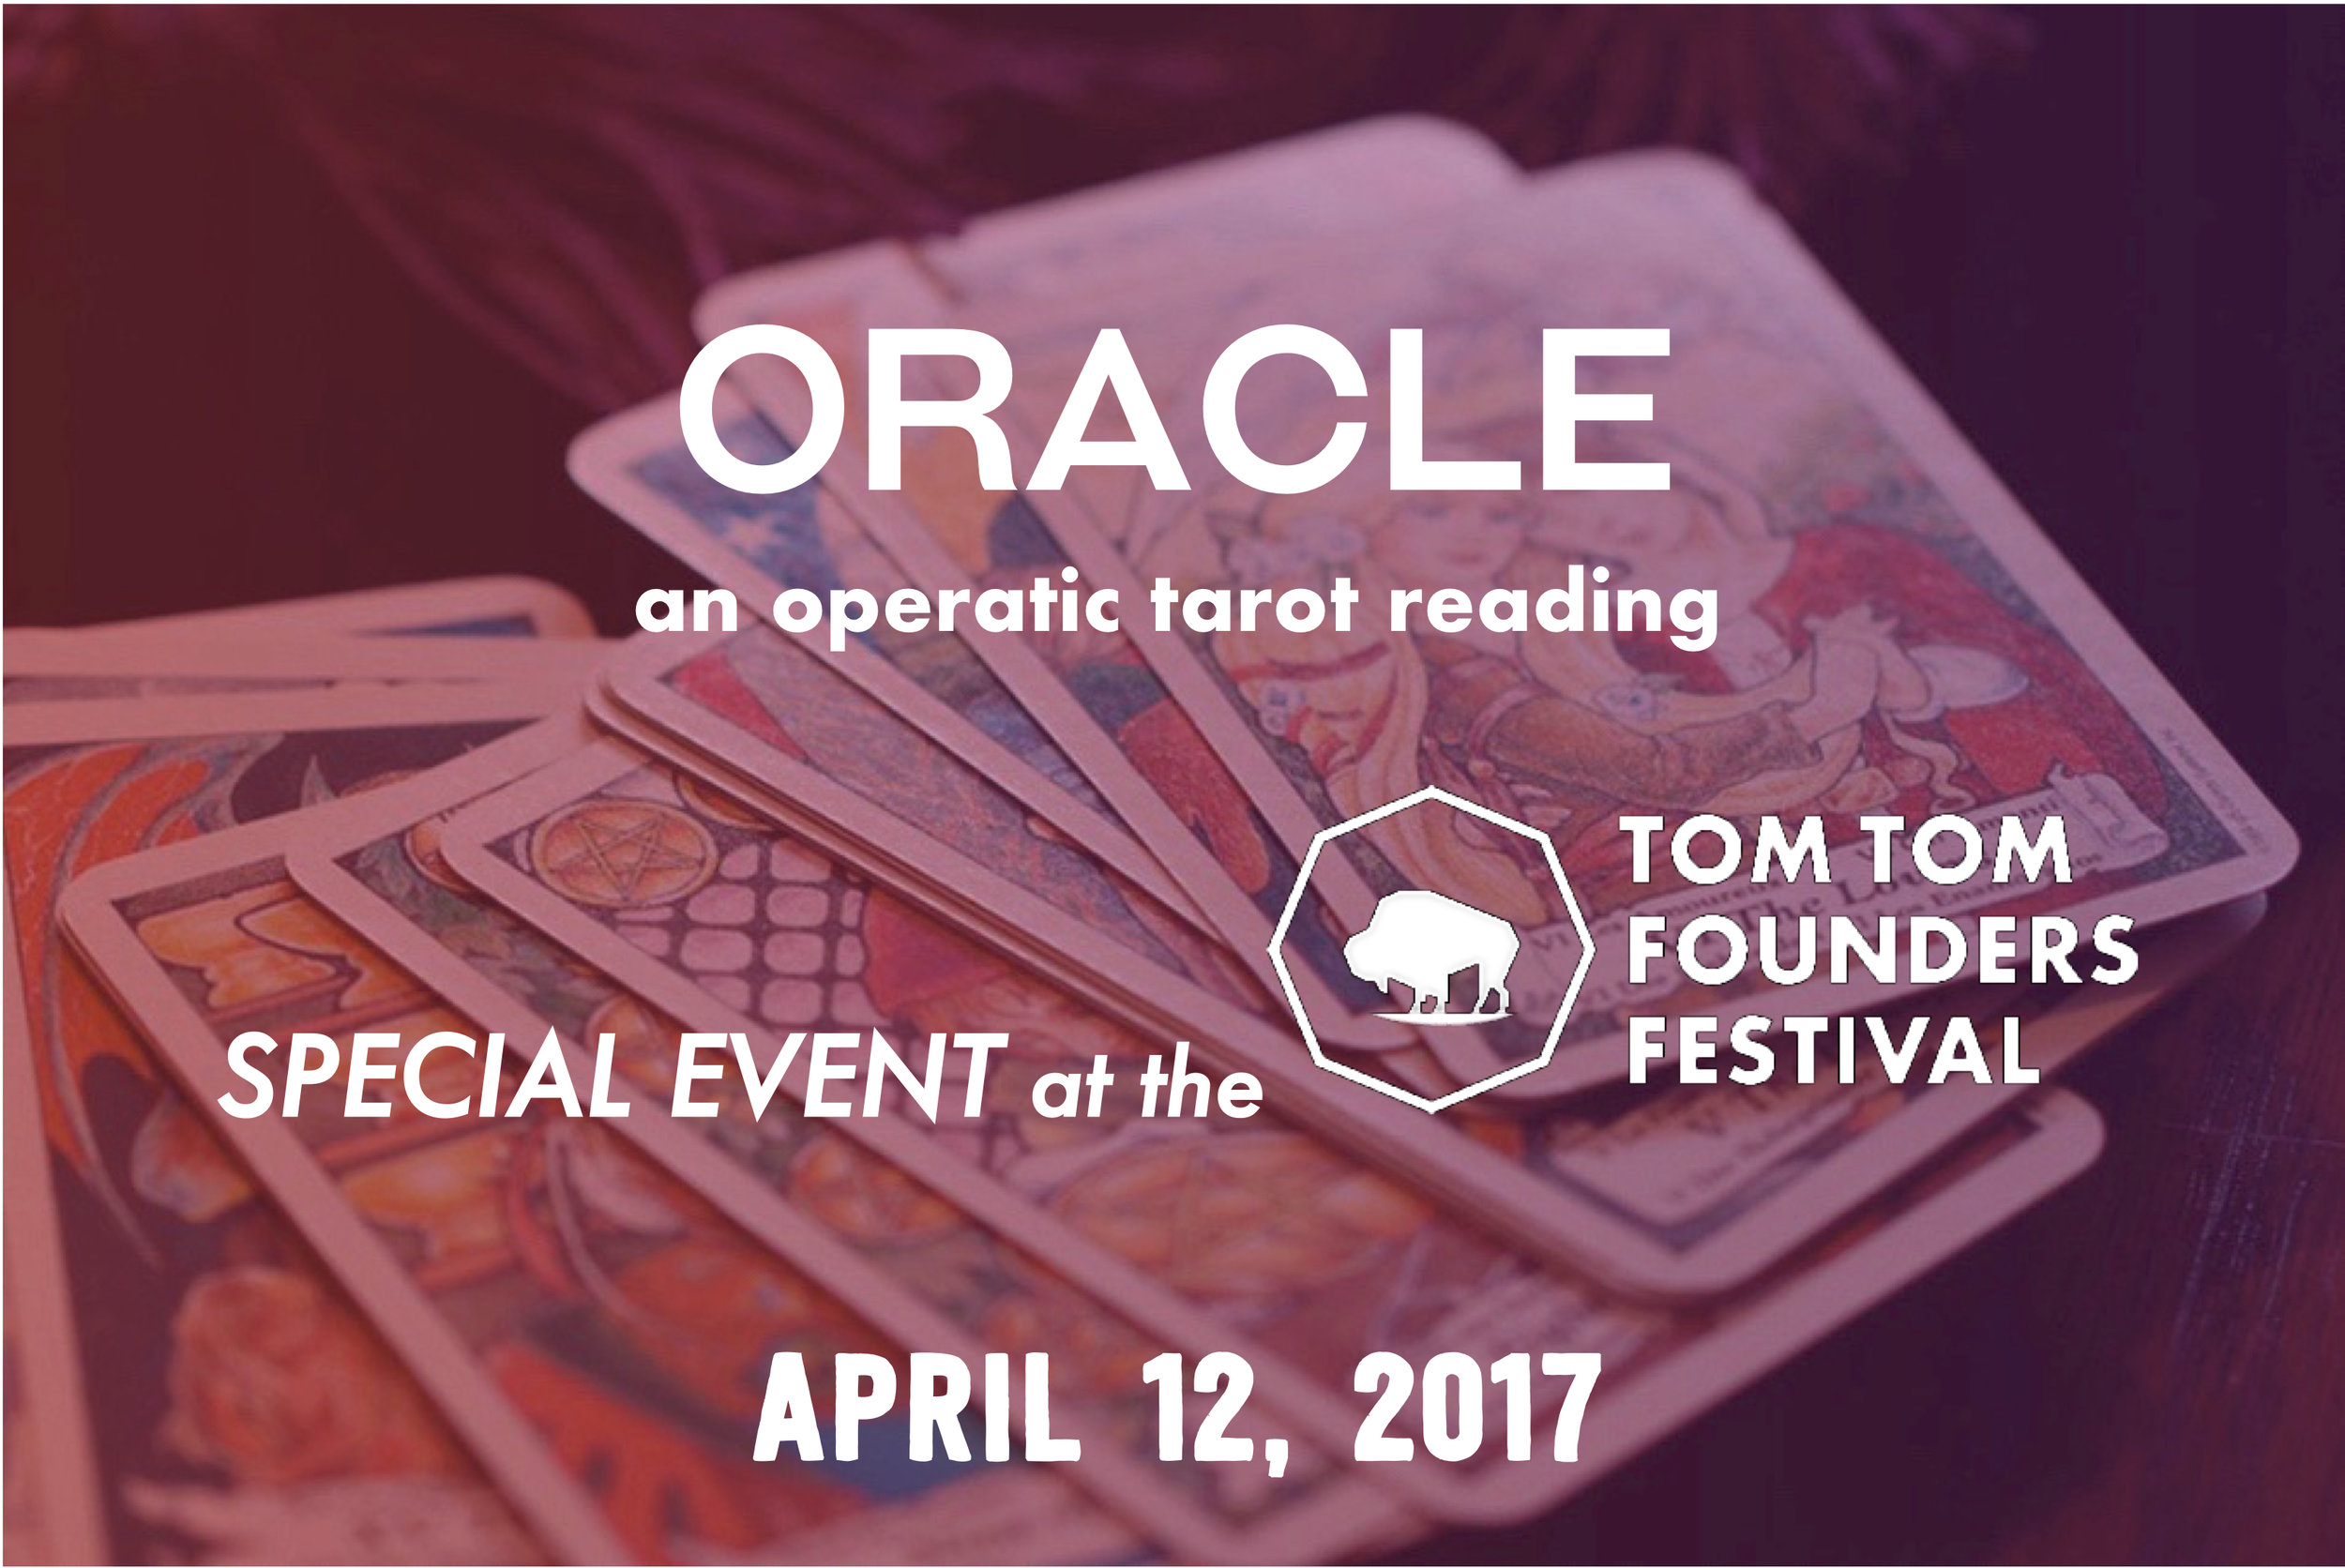 ORACLE event page copy 2.jpg